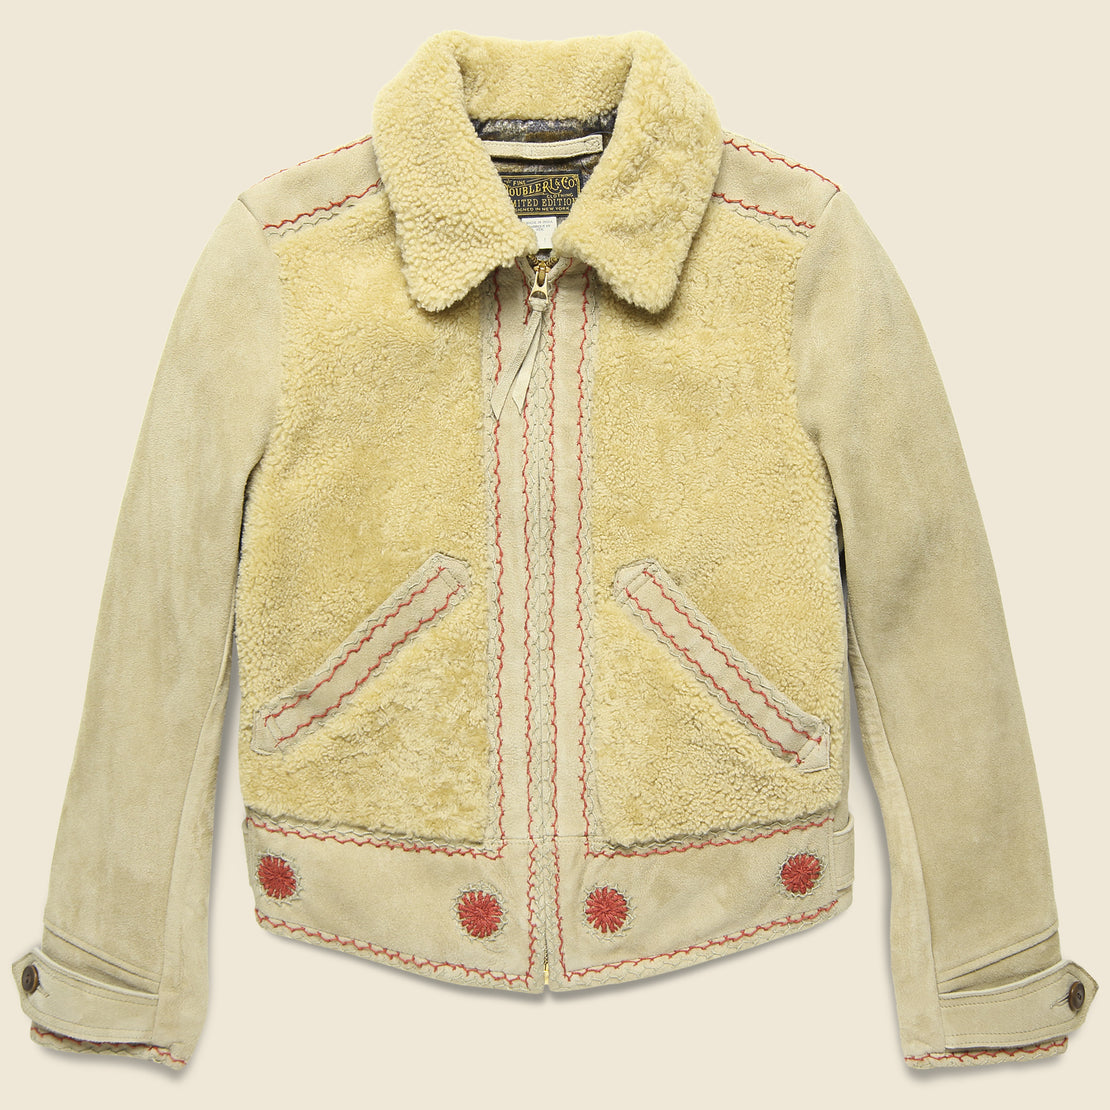 RRL Williams Shearling Embroidered Suede Jacket - Cream